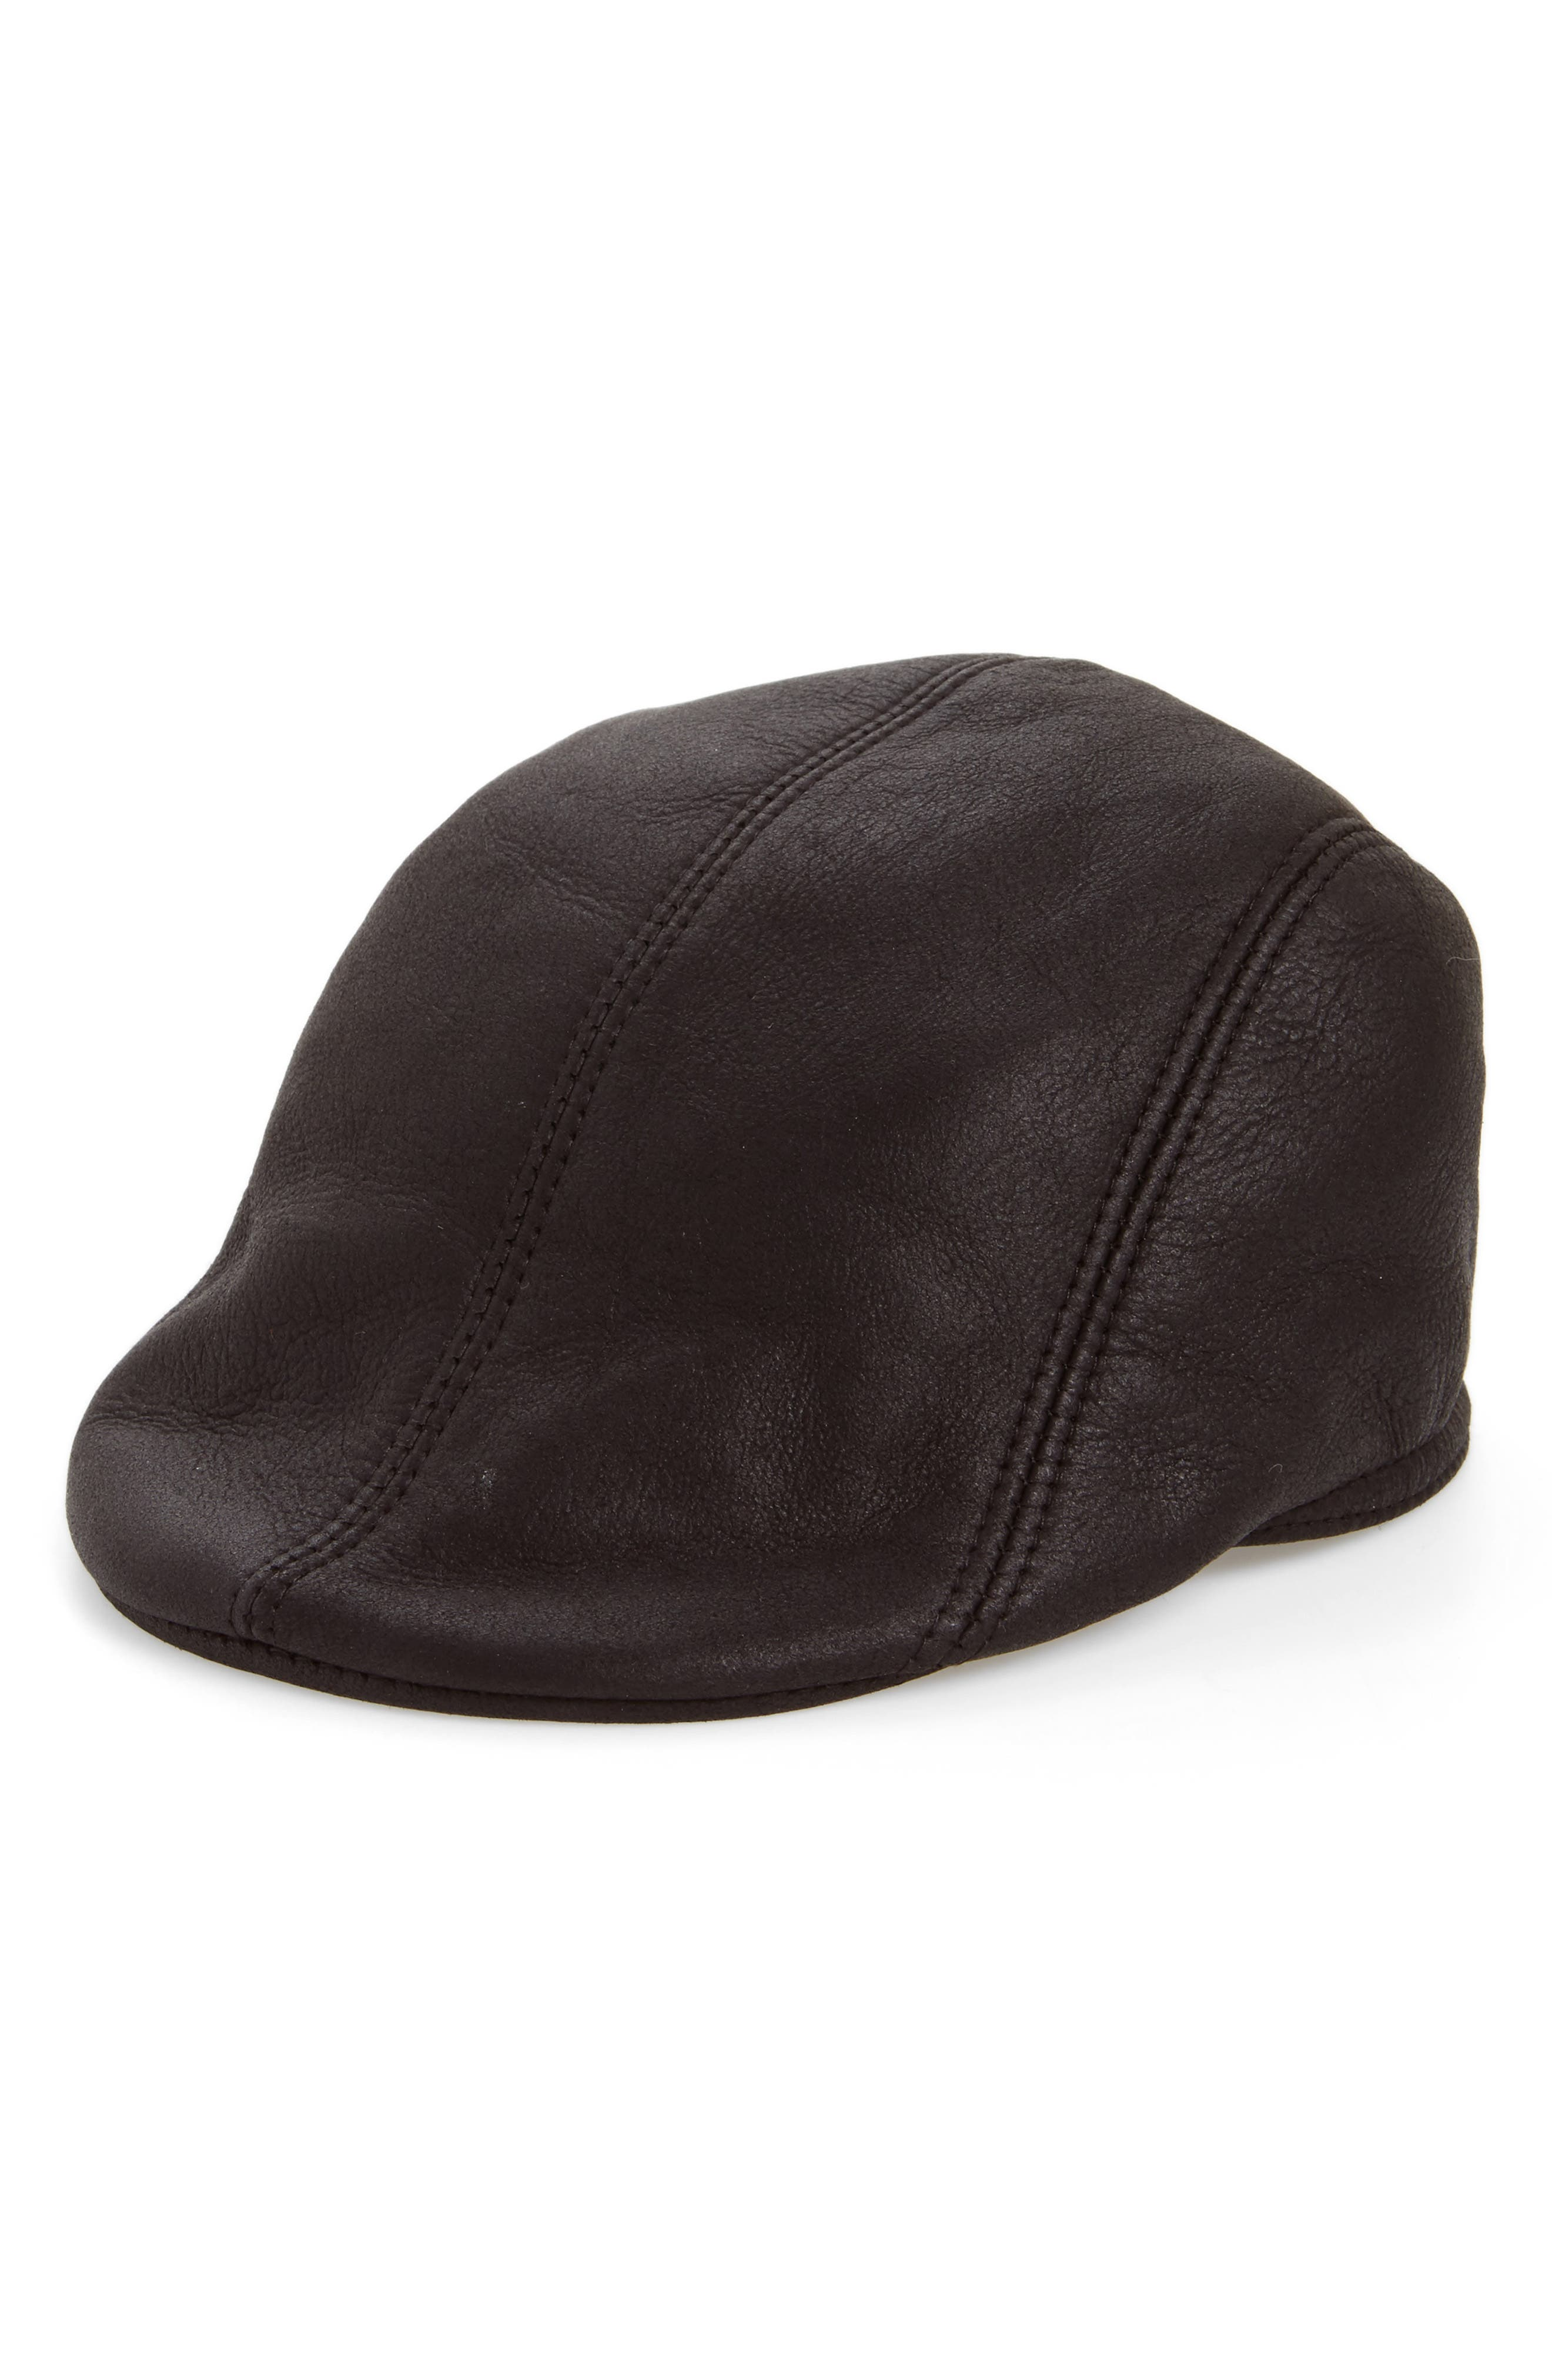 Genuine Shearling Leather Driving Cap,                         Main,                         color, Black